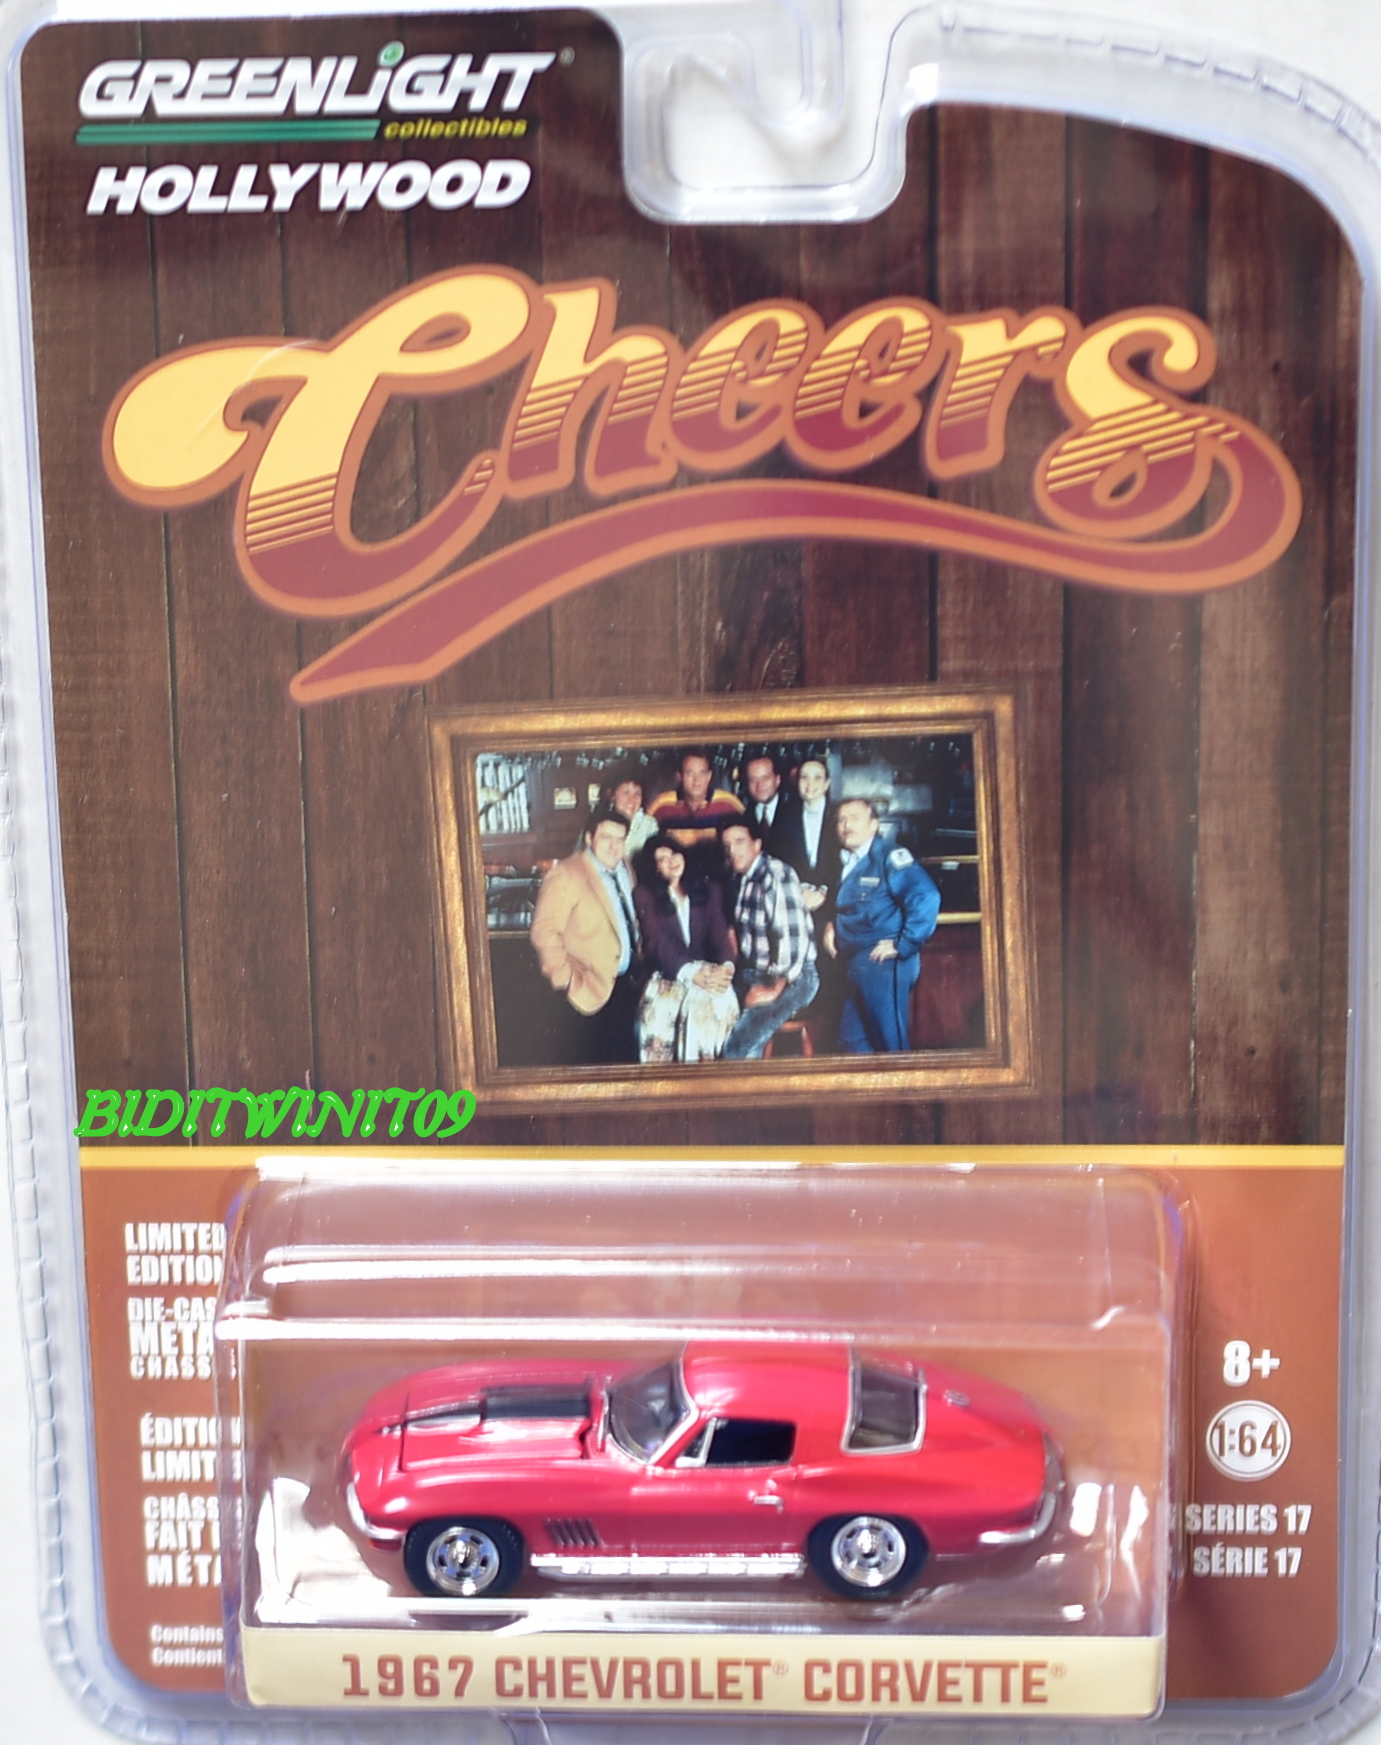 GREENLIGHT 2017 HOLLYWOOD SERIES 17 THEERS 1967 CHEVROLET CORVETTE